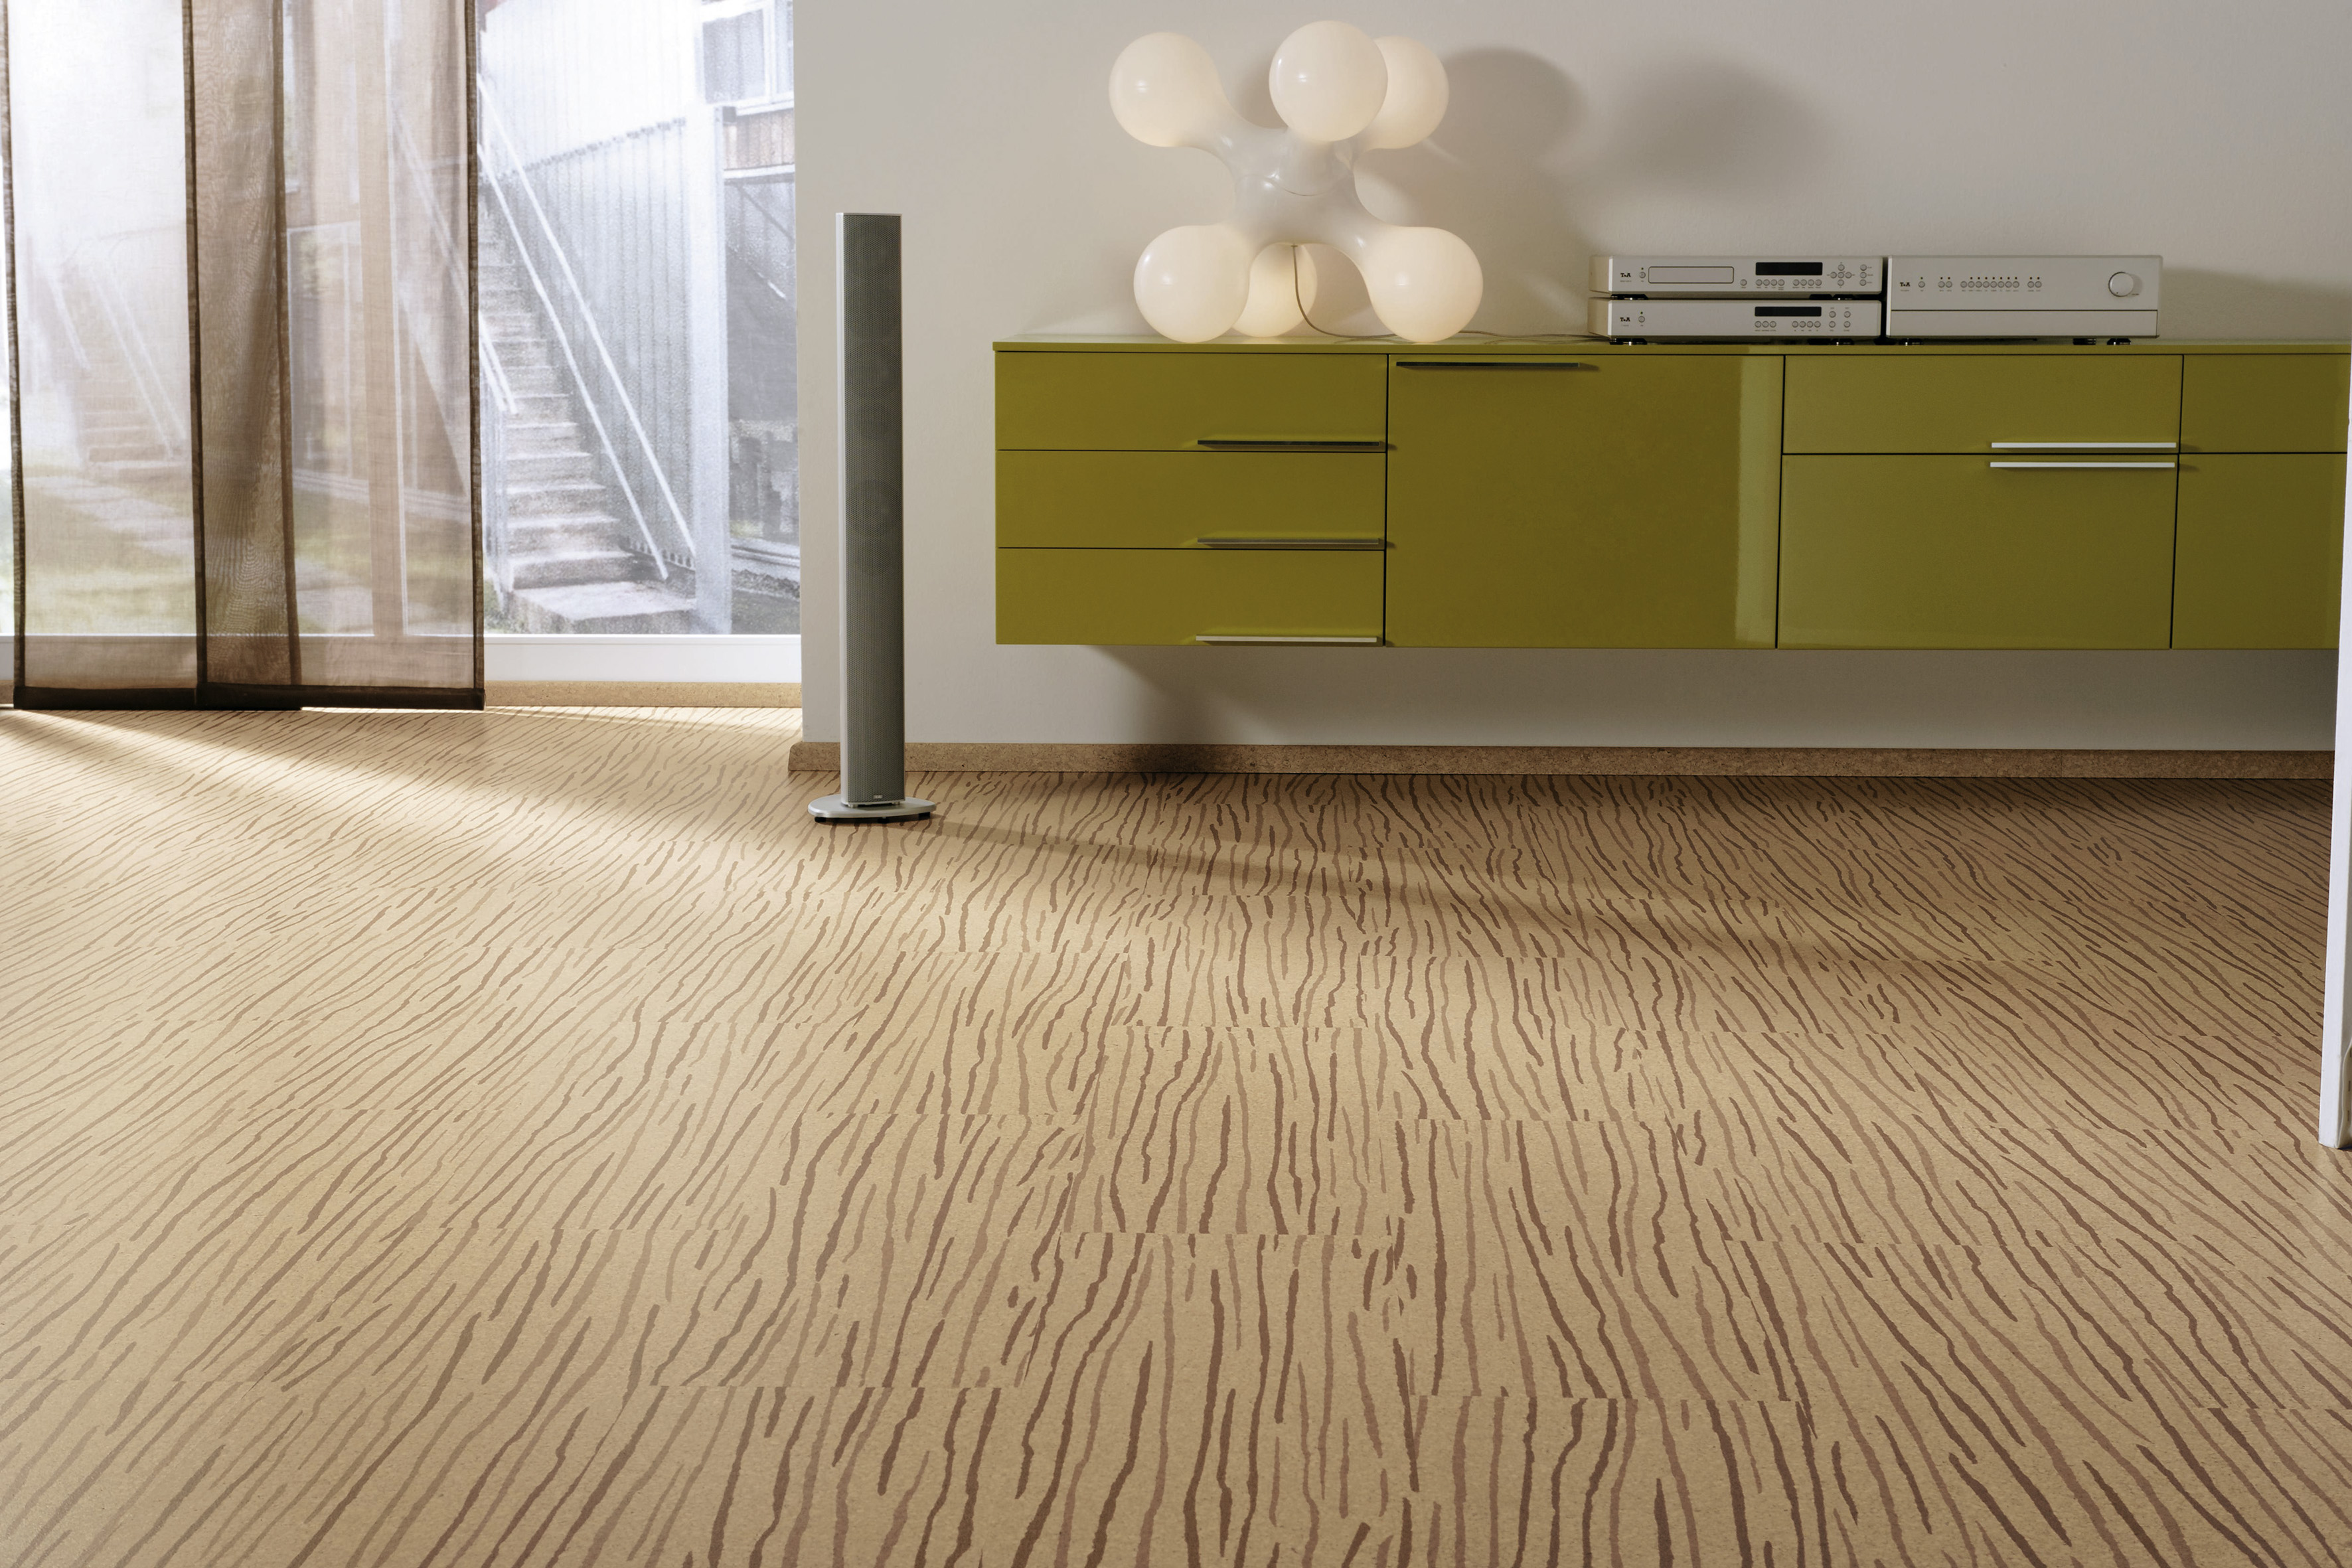 modern cork flooring cork flooring kitchen Flooring Interiors Home Design